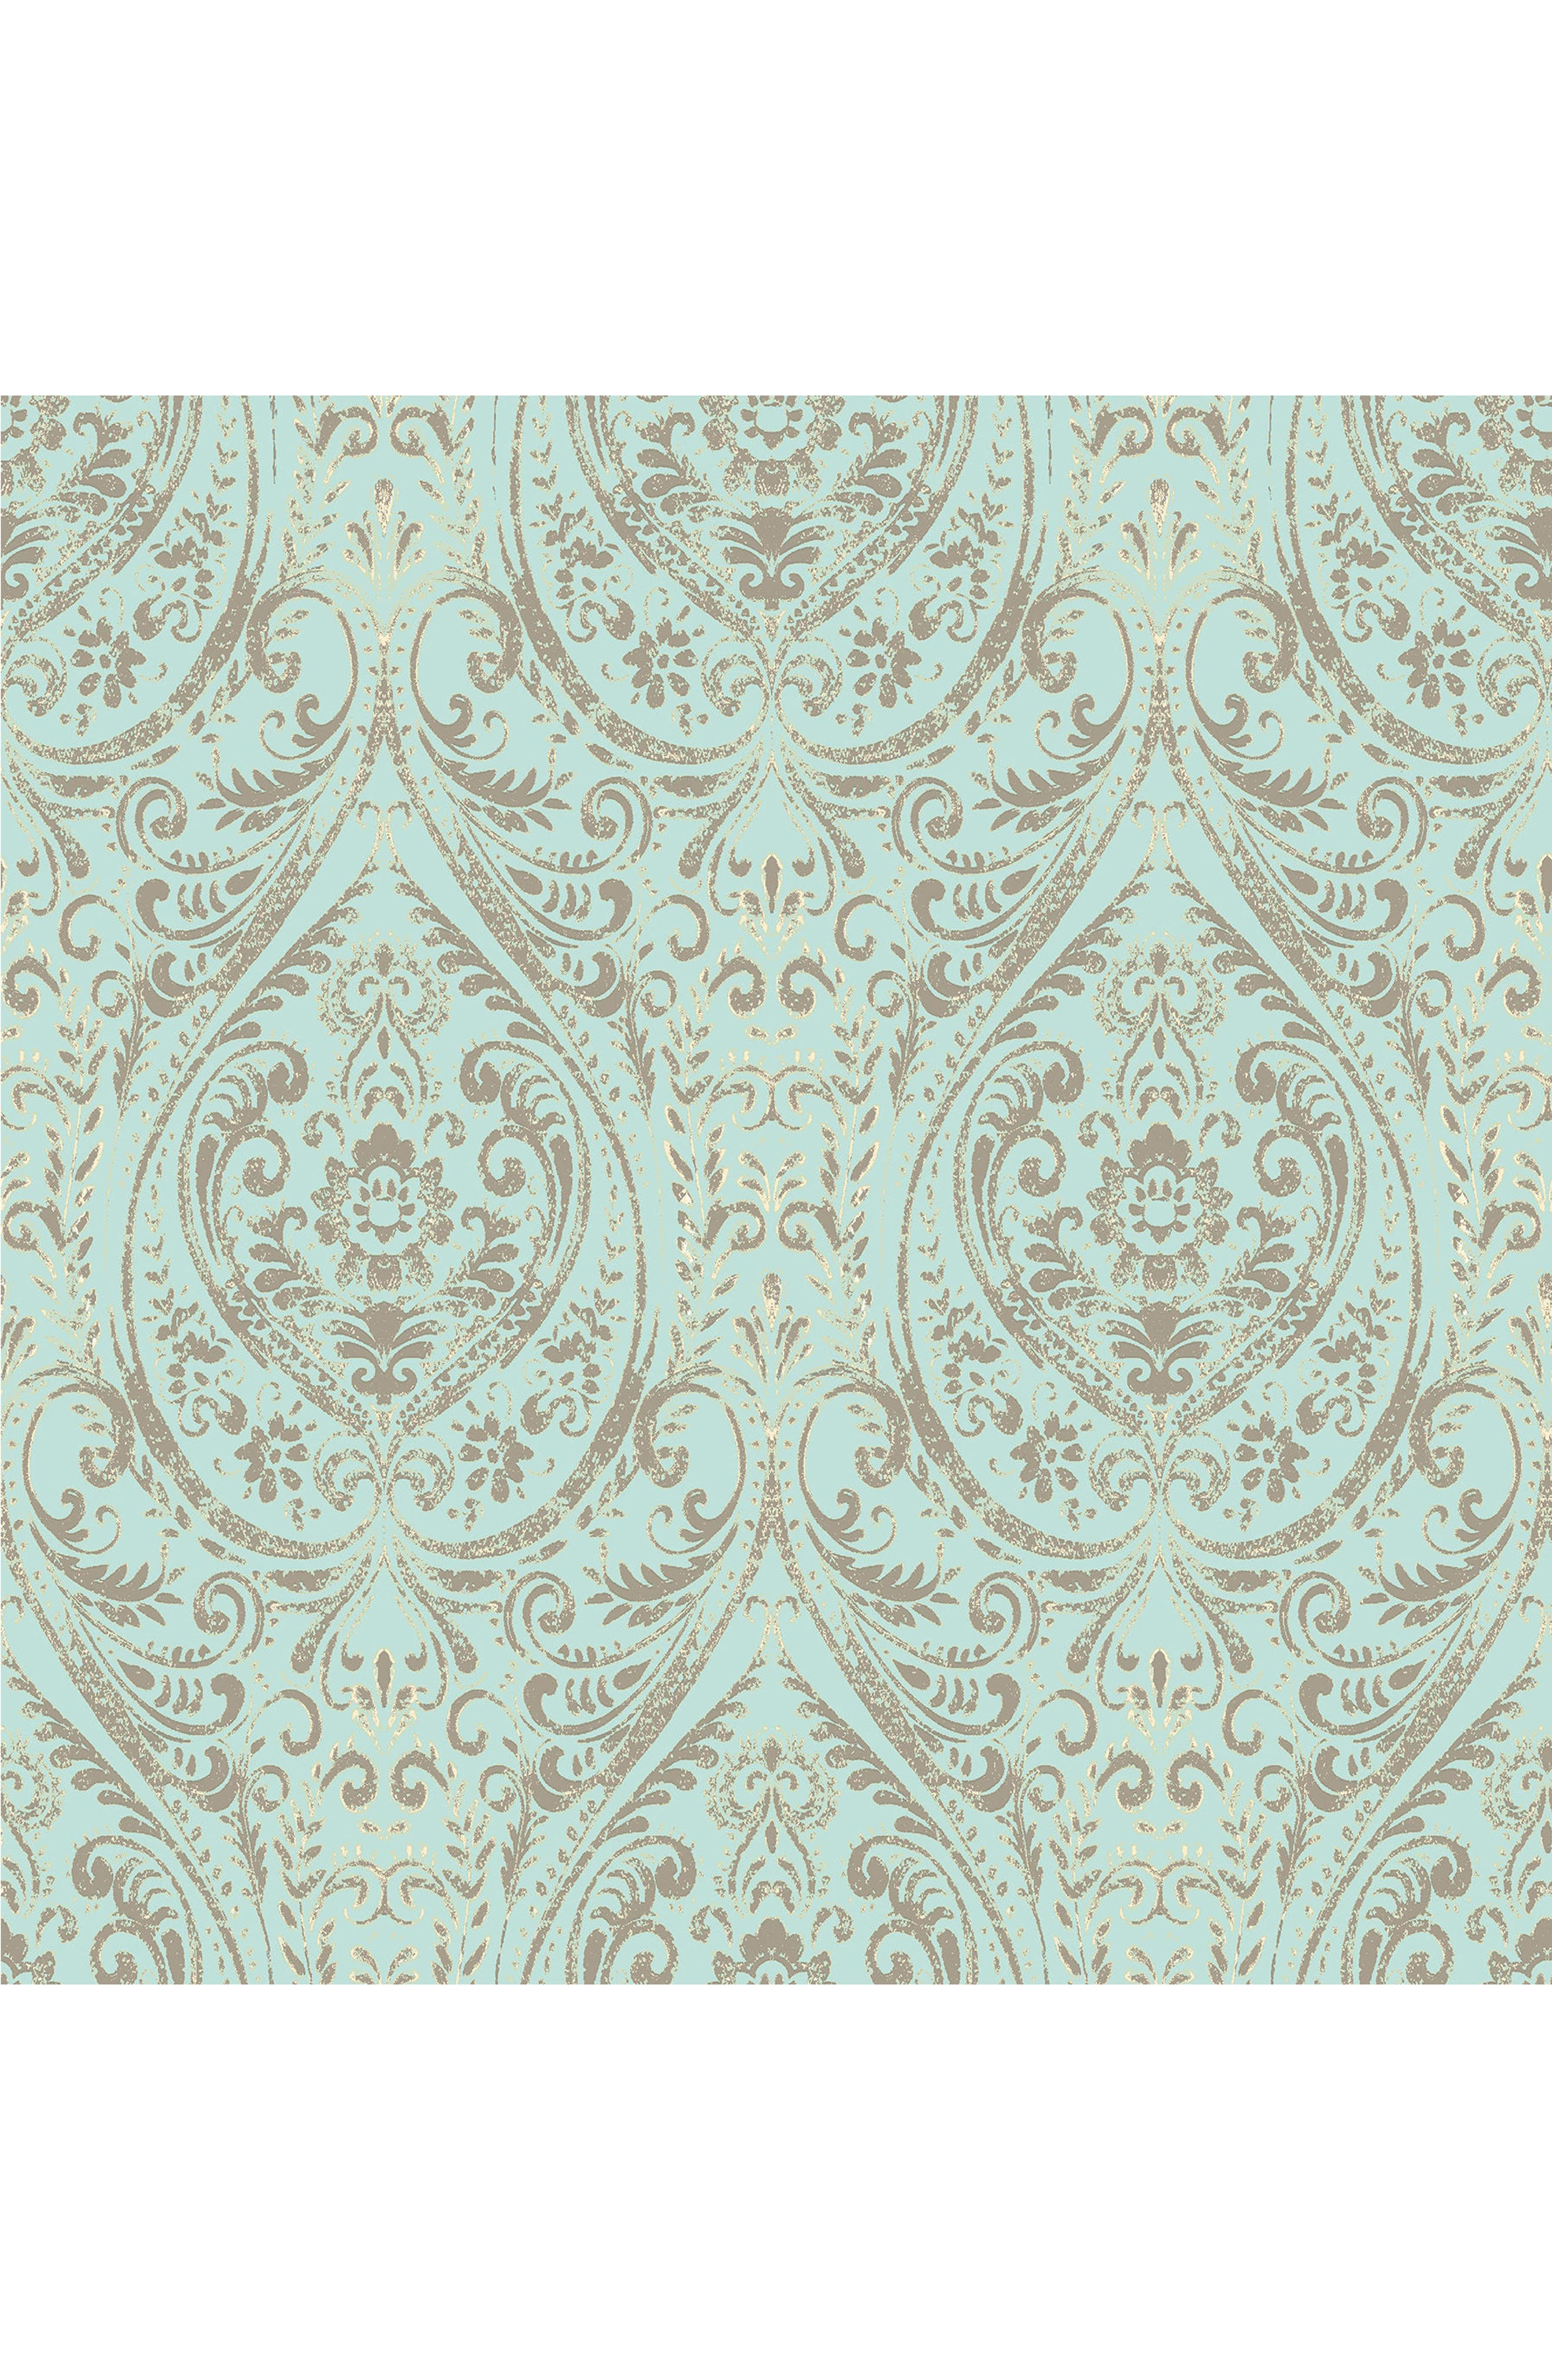 Nomad Damask  Peel & Stick Vinyl Wallpaper,                             Main thumbnail 1, color,                             Blue